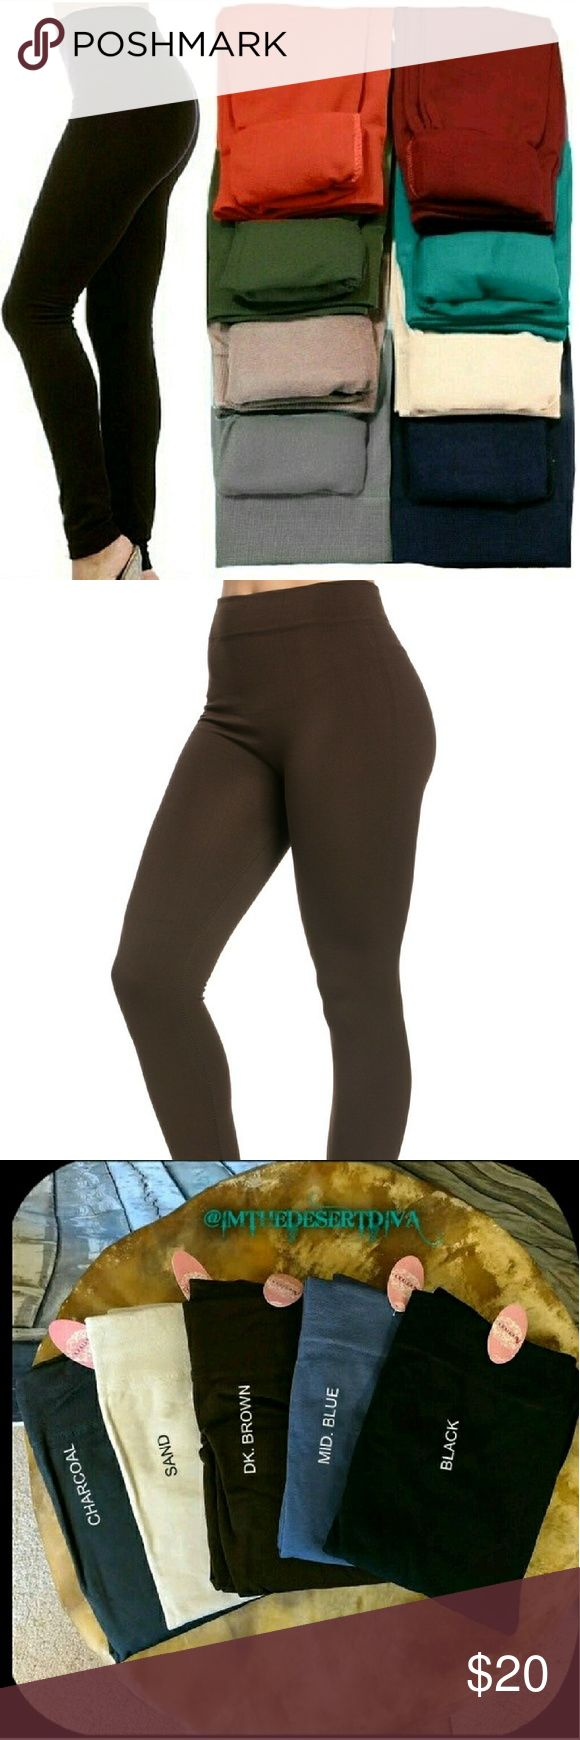 ‼️CLEARANCE‼️DK BROWN Fleece Lined Leggings 🔘ONE SIZE FITS MOST🔘(best fits S, M, L )  Super soft, very stretchy and stylish fleece leggings\footless tights. Looks like a regular sleek legging but inside is soft and cozy fleece that is warm & comfy. Warmth and style without bulkiness. 65% Polyester, 20% Cotton, 15% Spandex.  Available in other listings: BLACK, CHARCOAL, MIDNIGHT BLUE, WINE & SAND.  🔴Price Firm Unless Bundled 🔴No Trades Pants Leggings